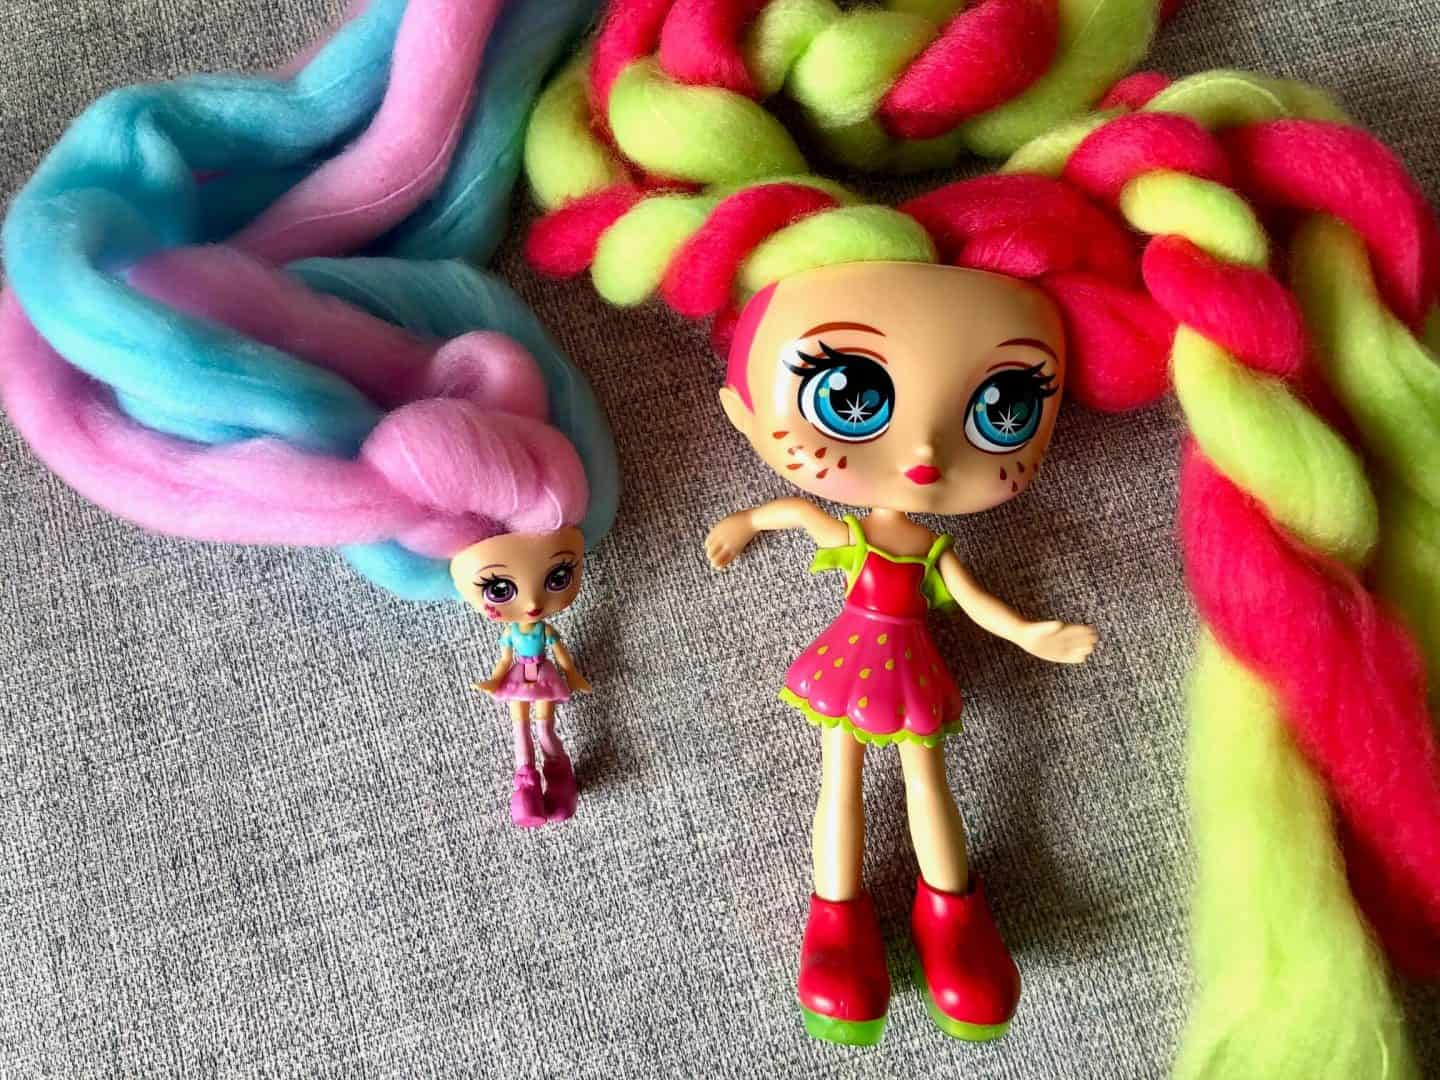 The Size difference in the Candylocks dolls